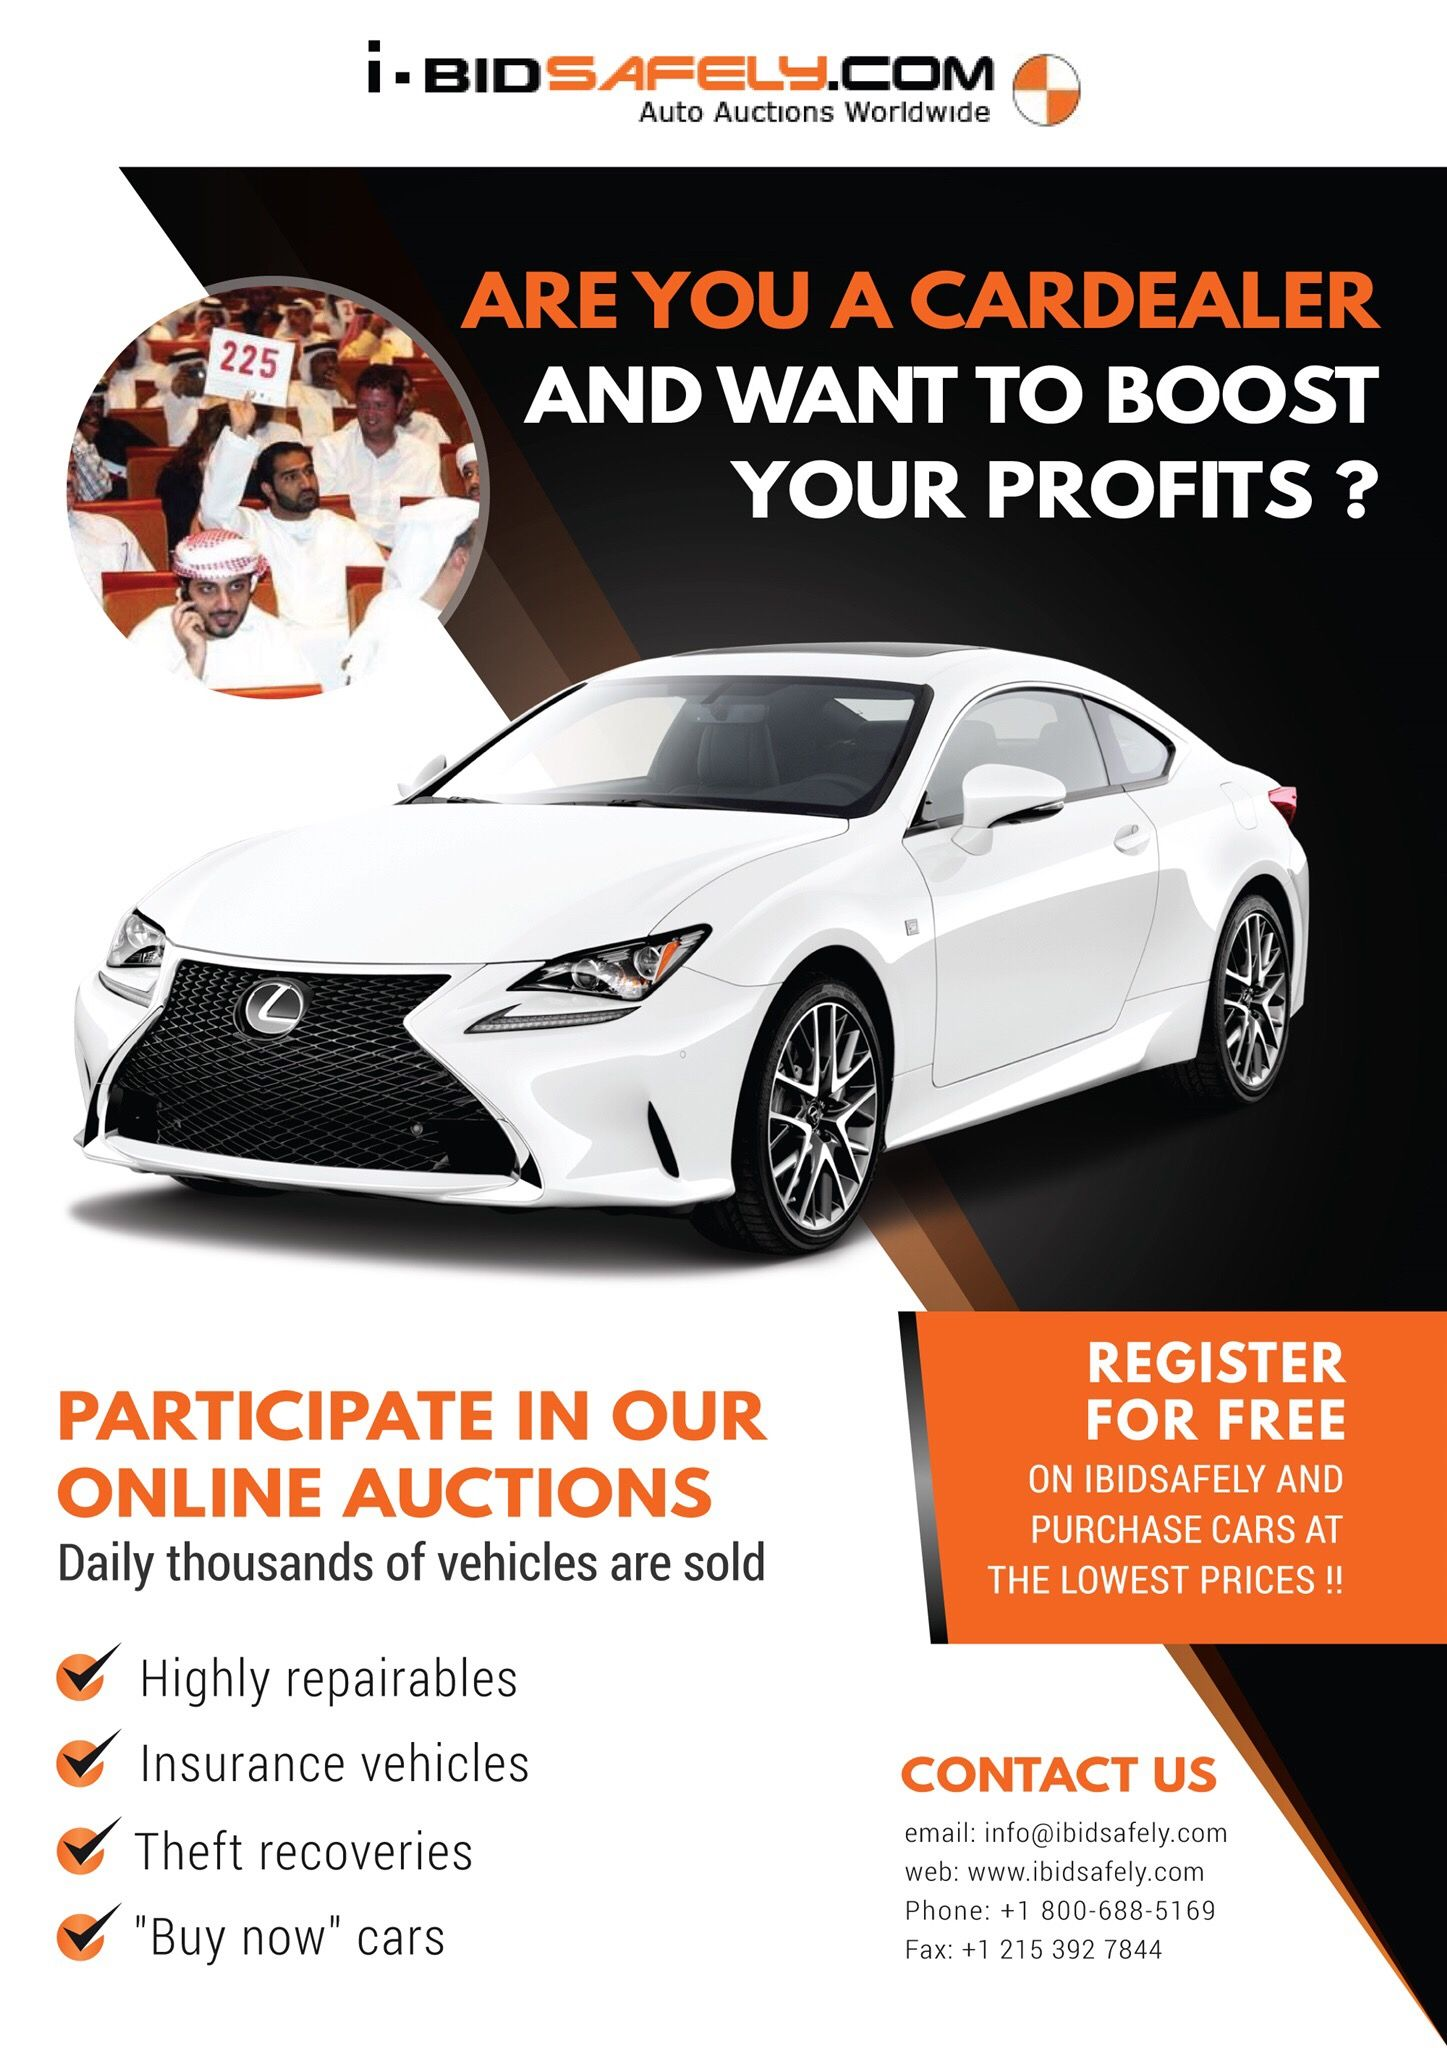 Participate in the online auction of cars Register for free on